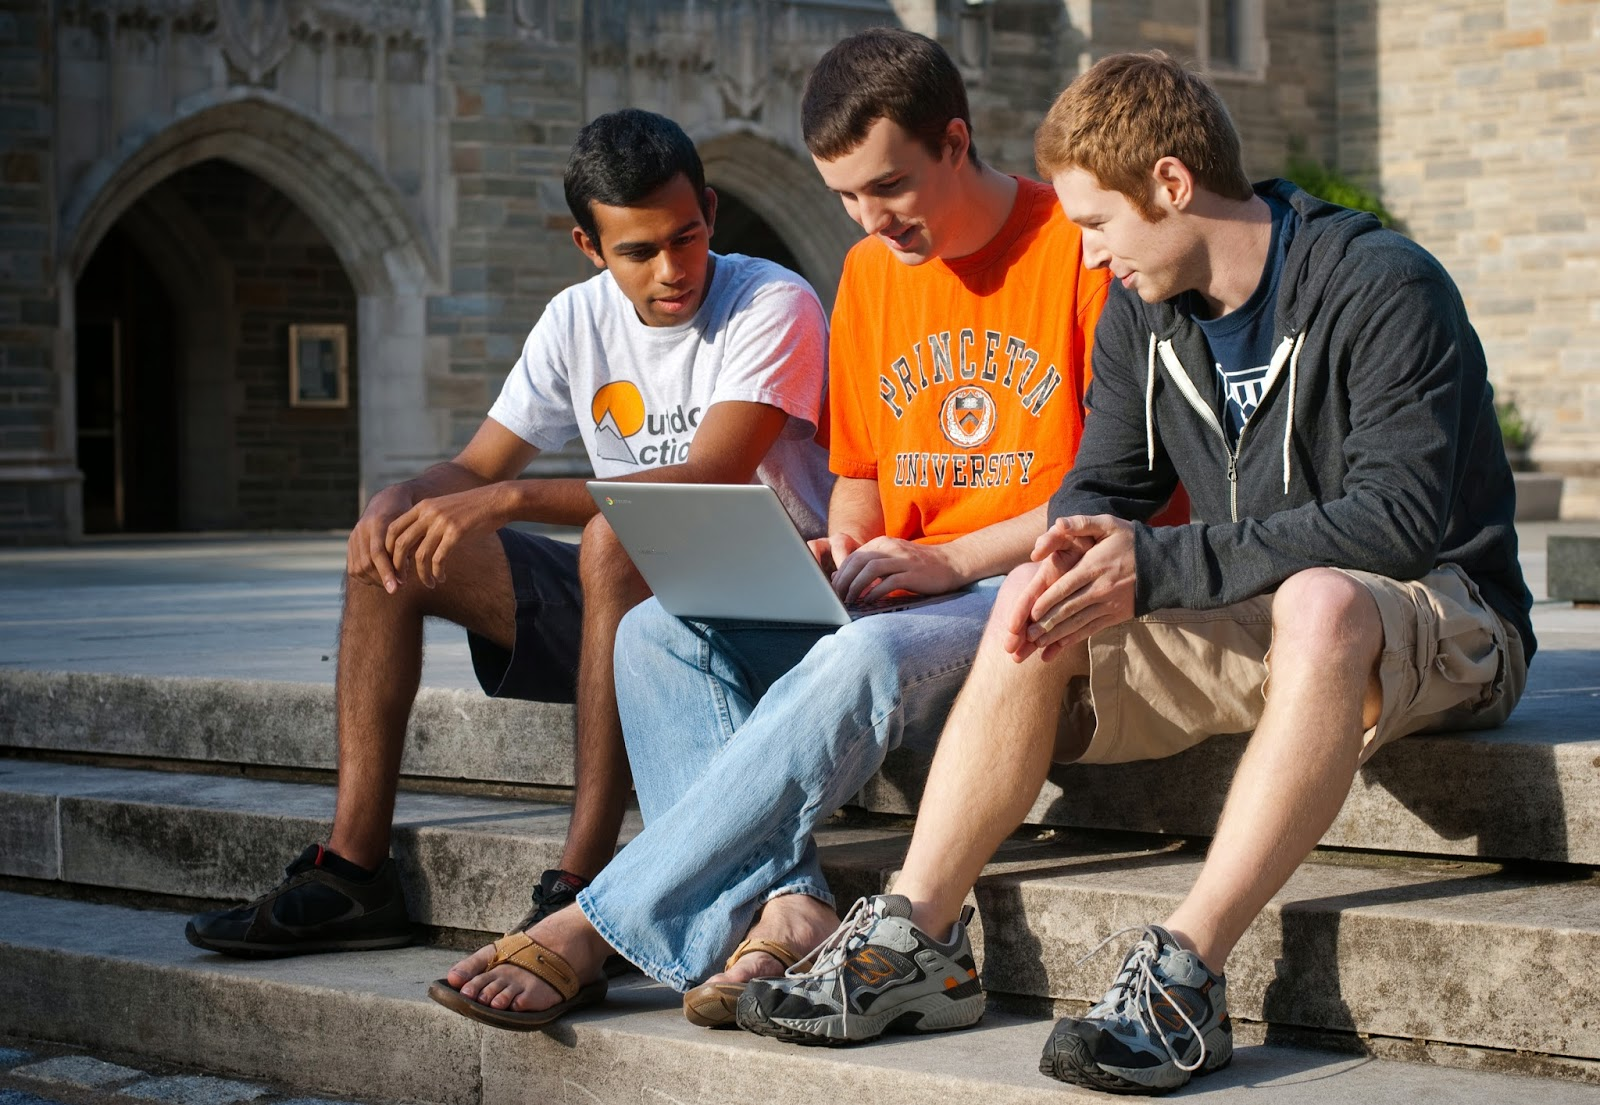 Top pane. princetonstudentswithchromebook (3) (1) (1) (1)